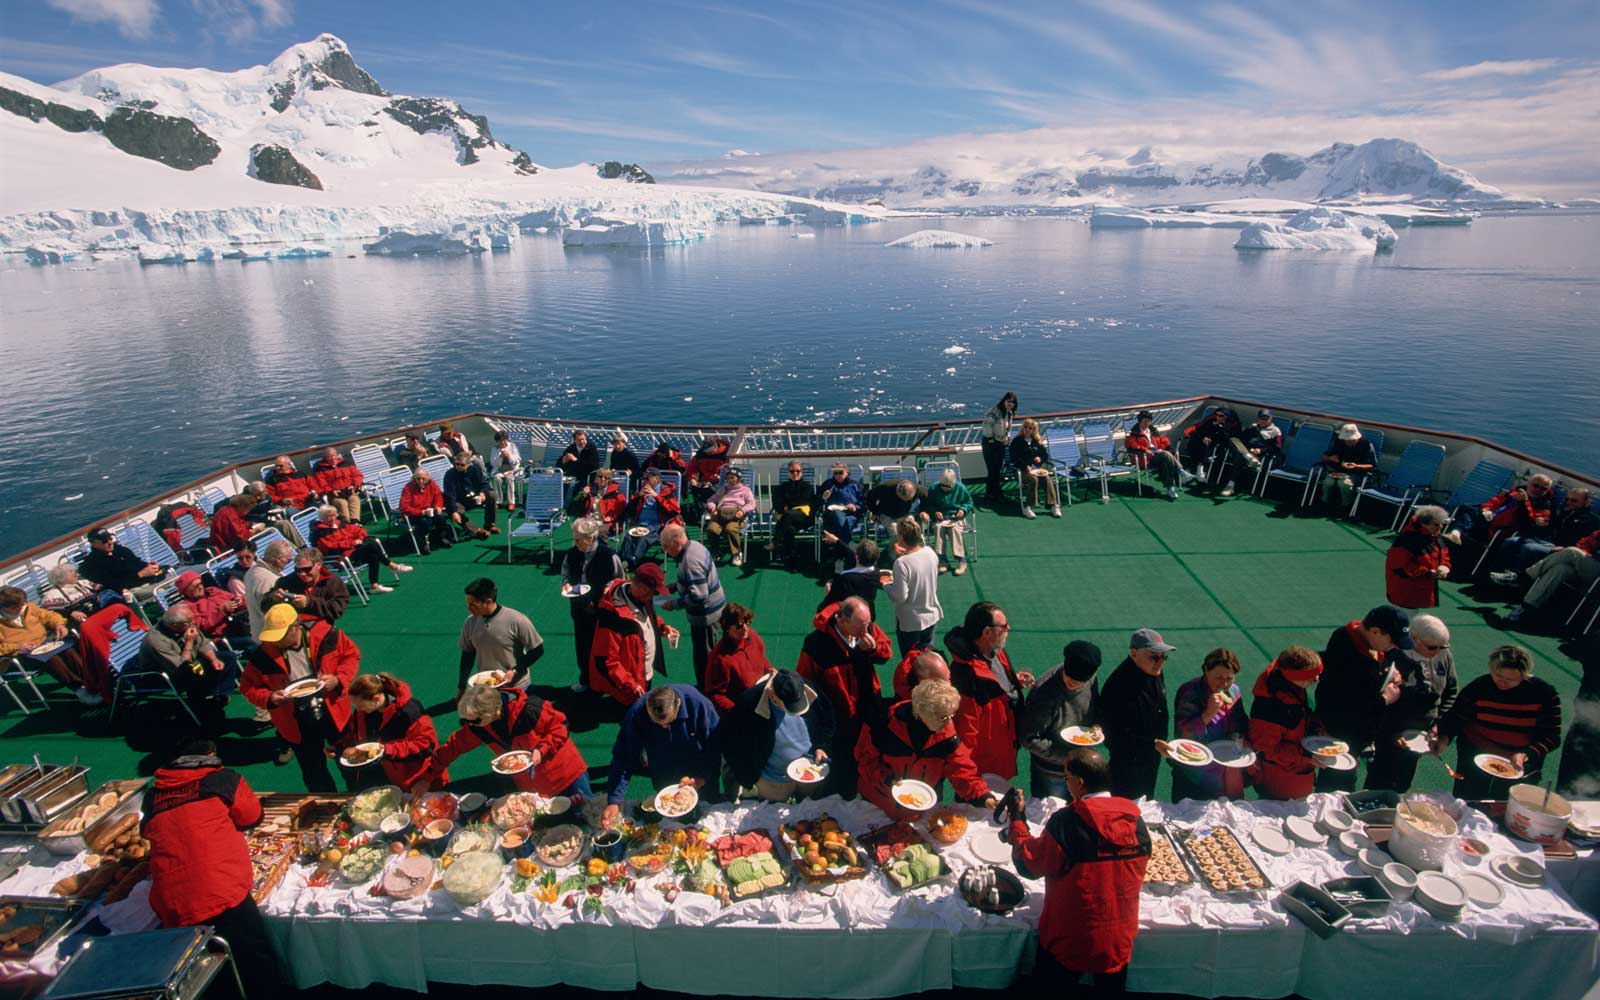 Passengers dine at a buffet line on a cruise ship in Antarctica